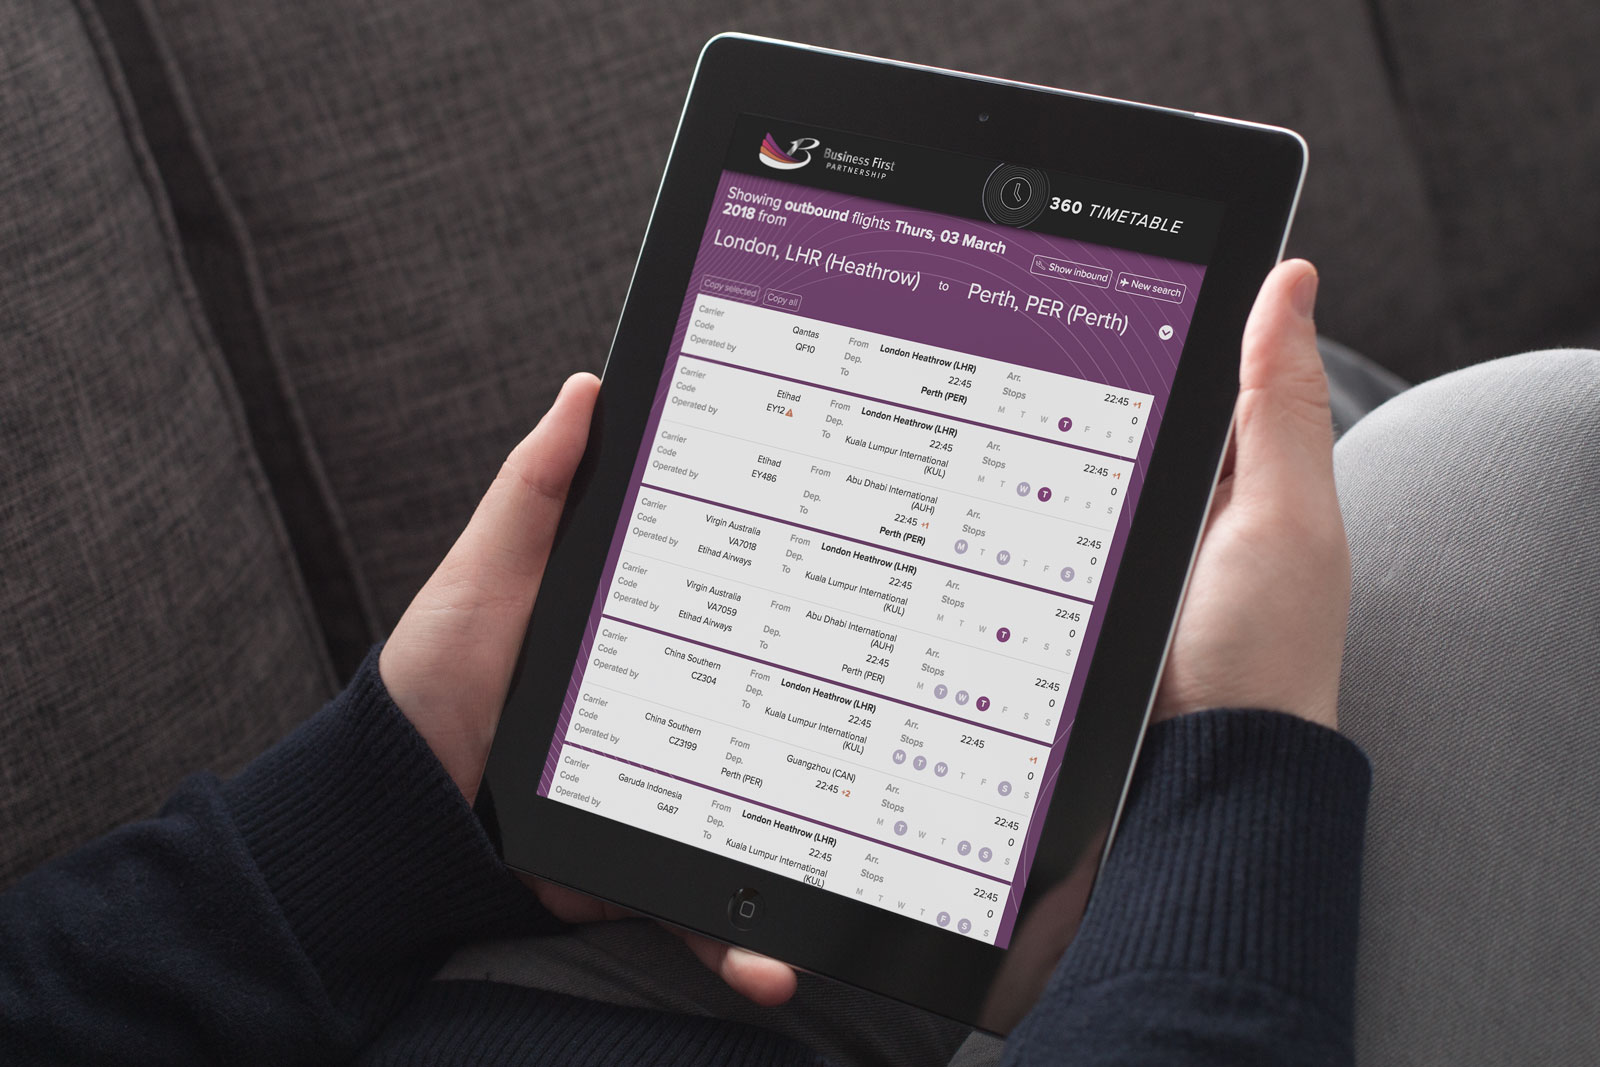 Timetable app for corporate travel management